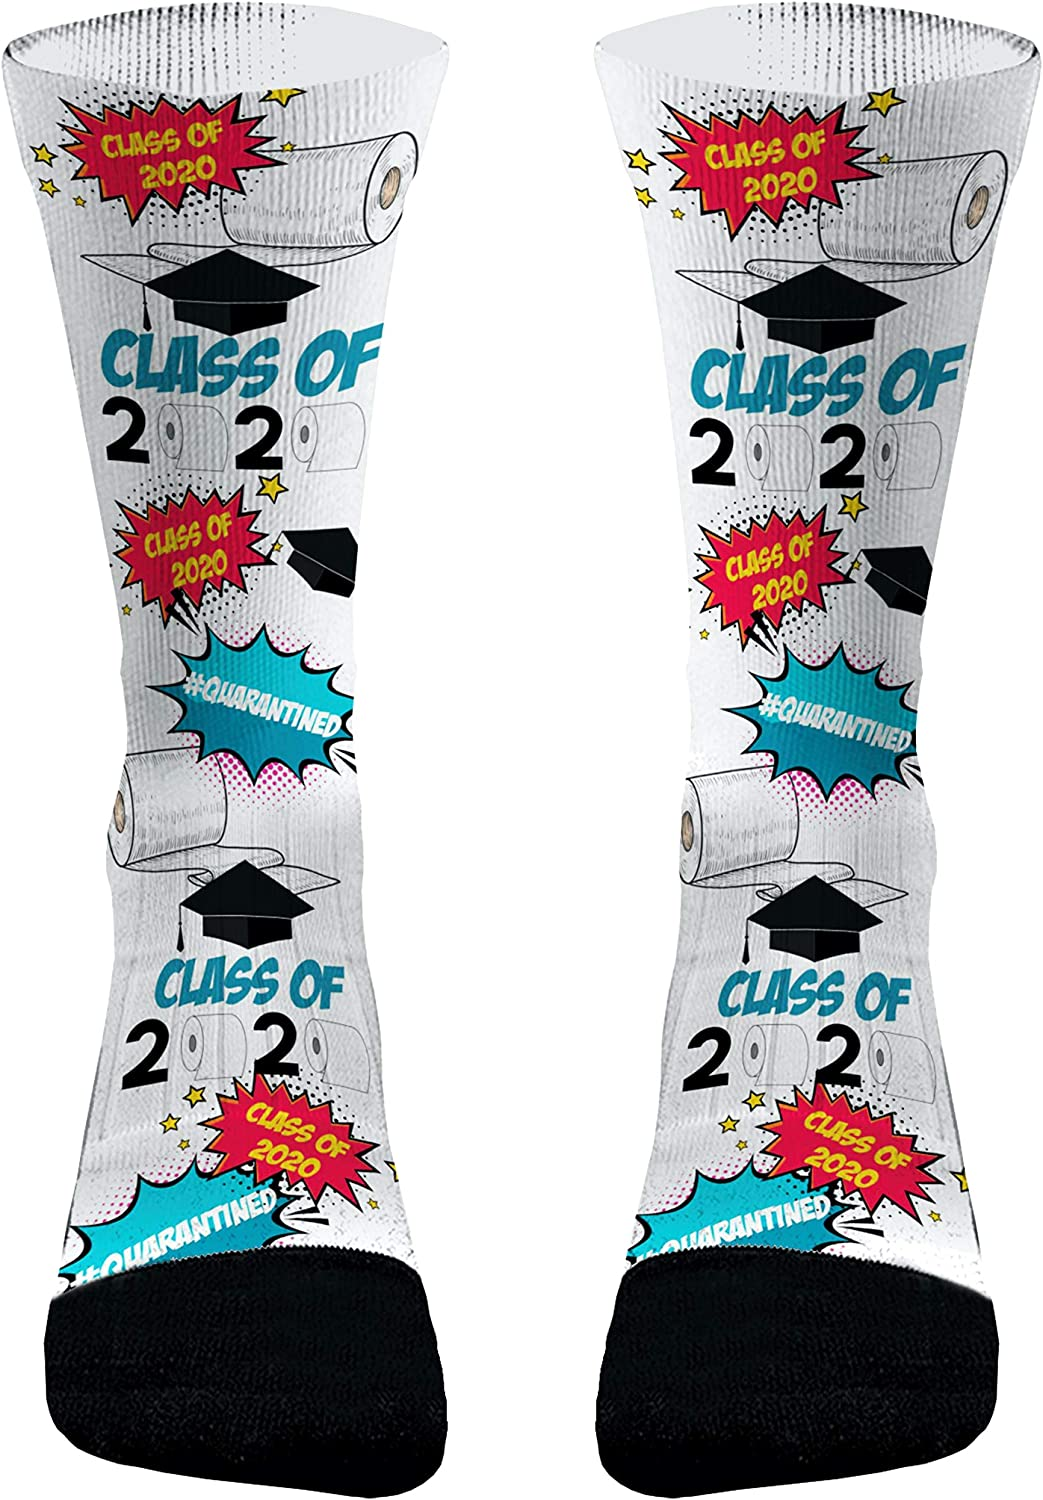 Class of 2020 Graduation Socks Gifts with Bachelor Cap and Funny Printing elements Cotton Sports Socks Calf Socks